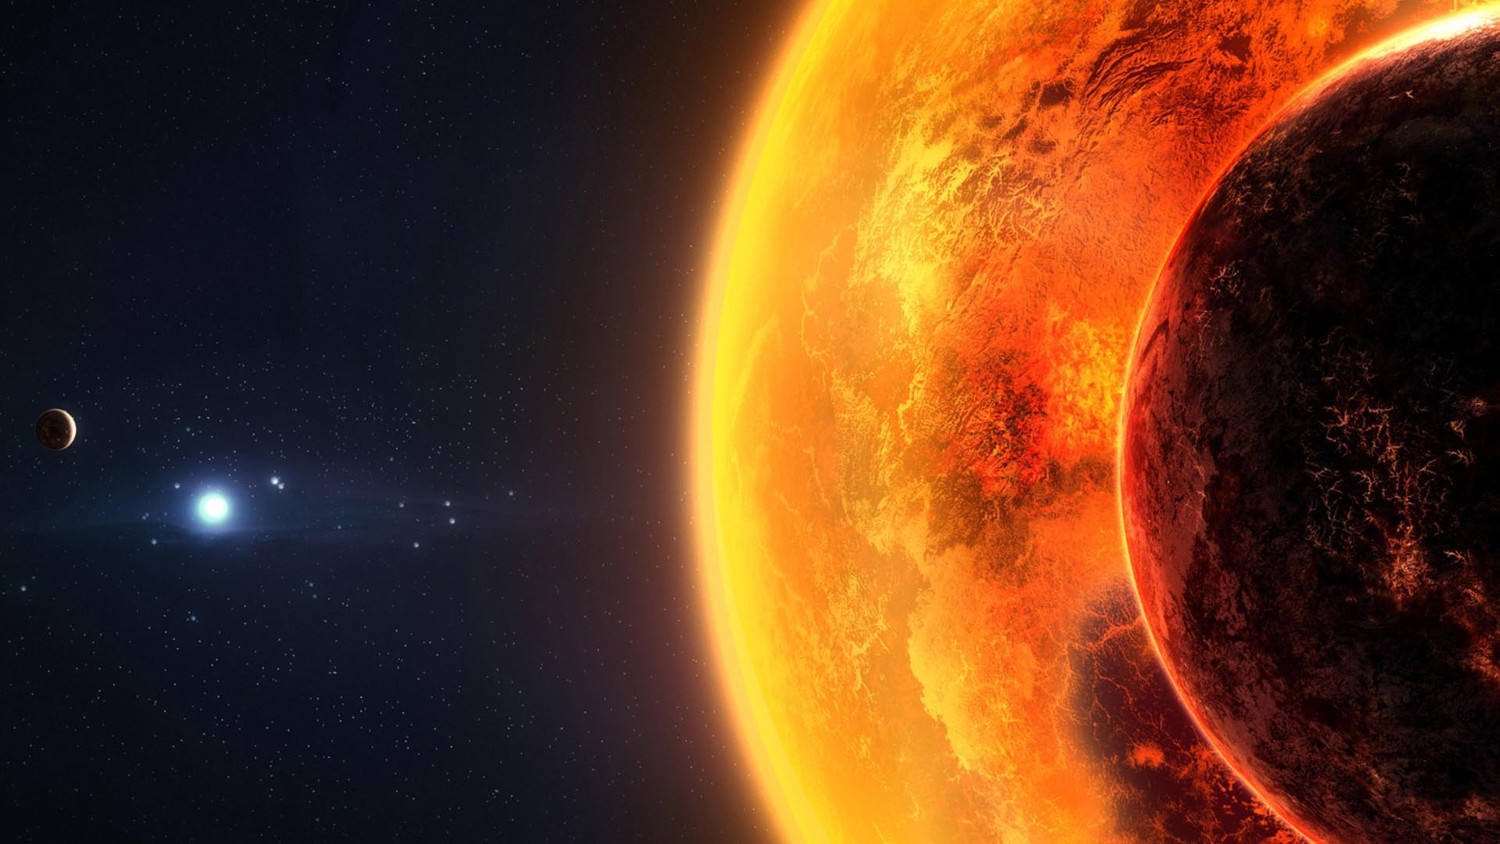 Scientists have found out the exact time of the formation of the solar system